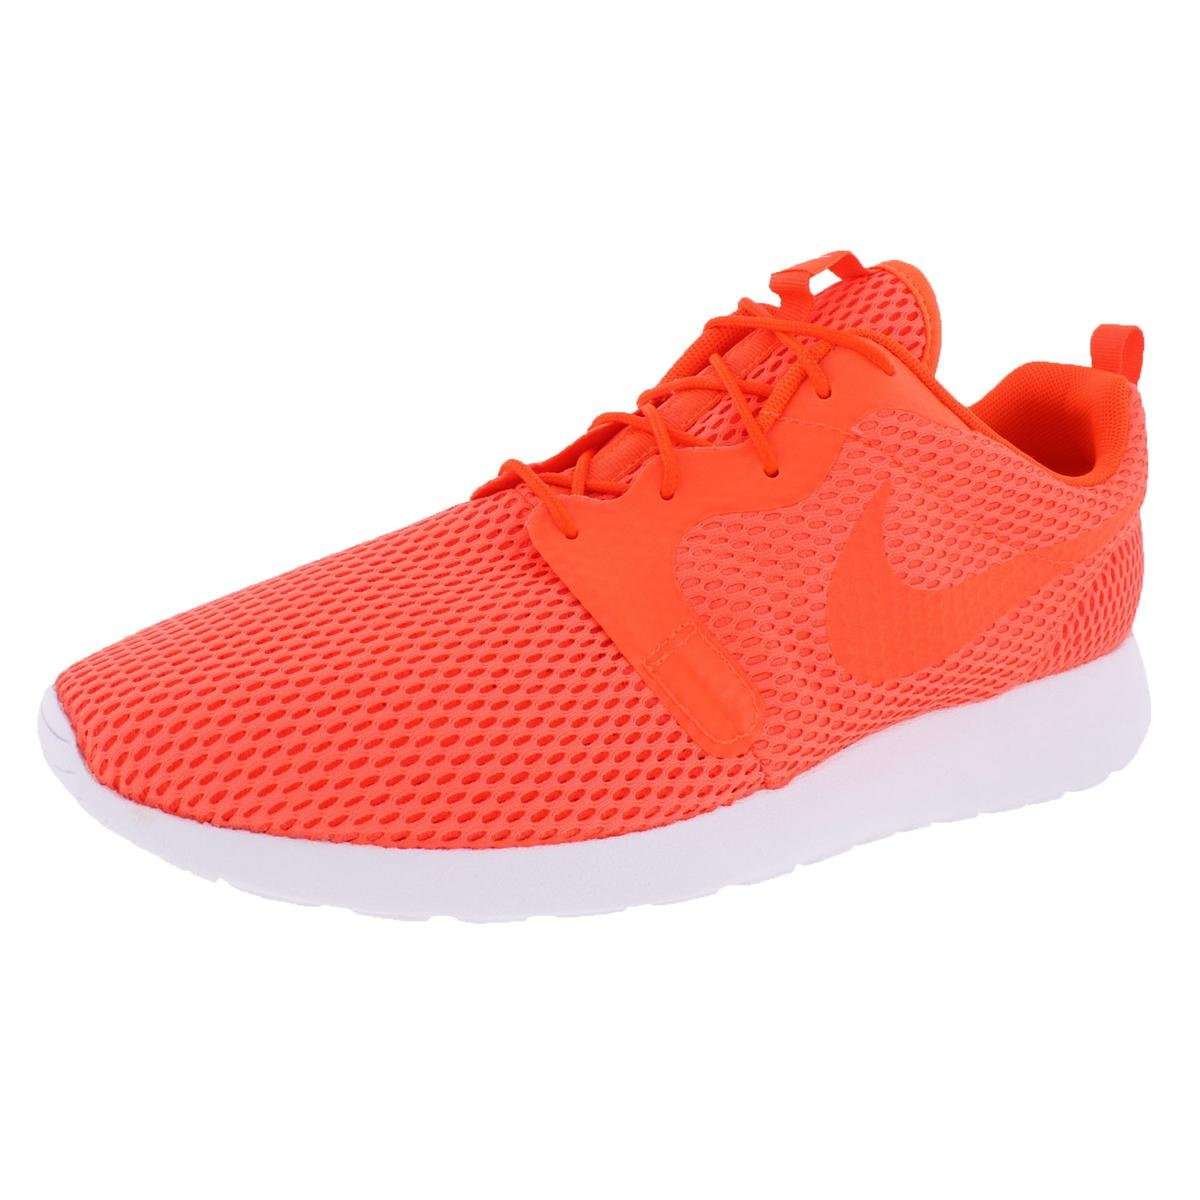 48fc1ad888fb Galleon - Nike Mens Roshe One Hyp Br Total Crimson Ttl Crmsn White Running  Shoe 13 Men US